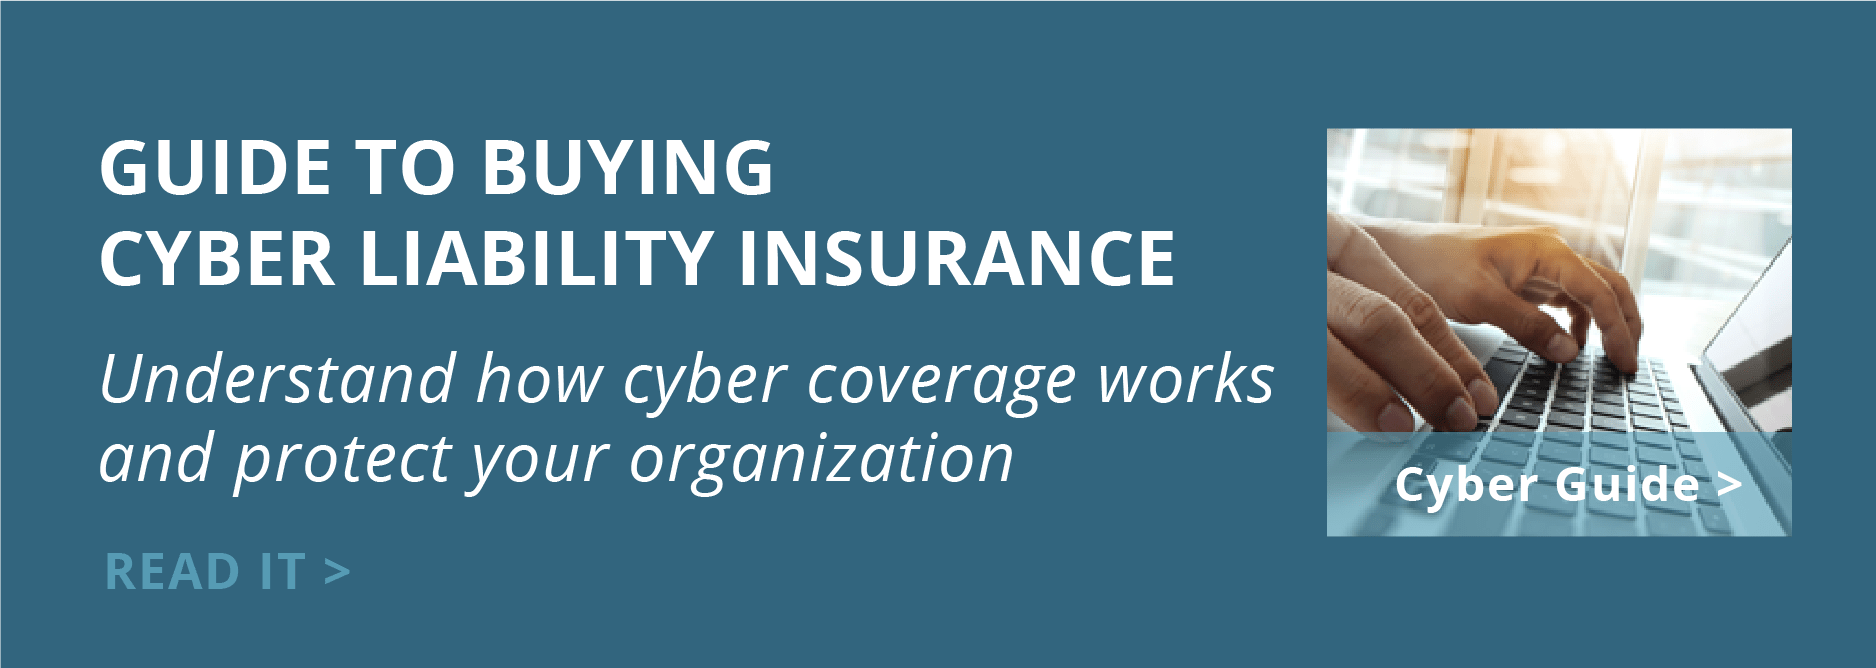 Click here to read the Cyber Liability Insurance Buying Guide